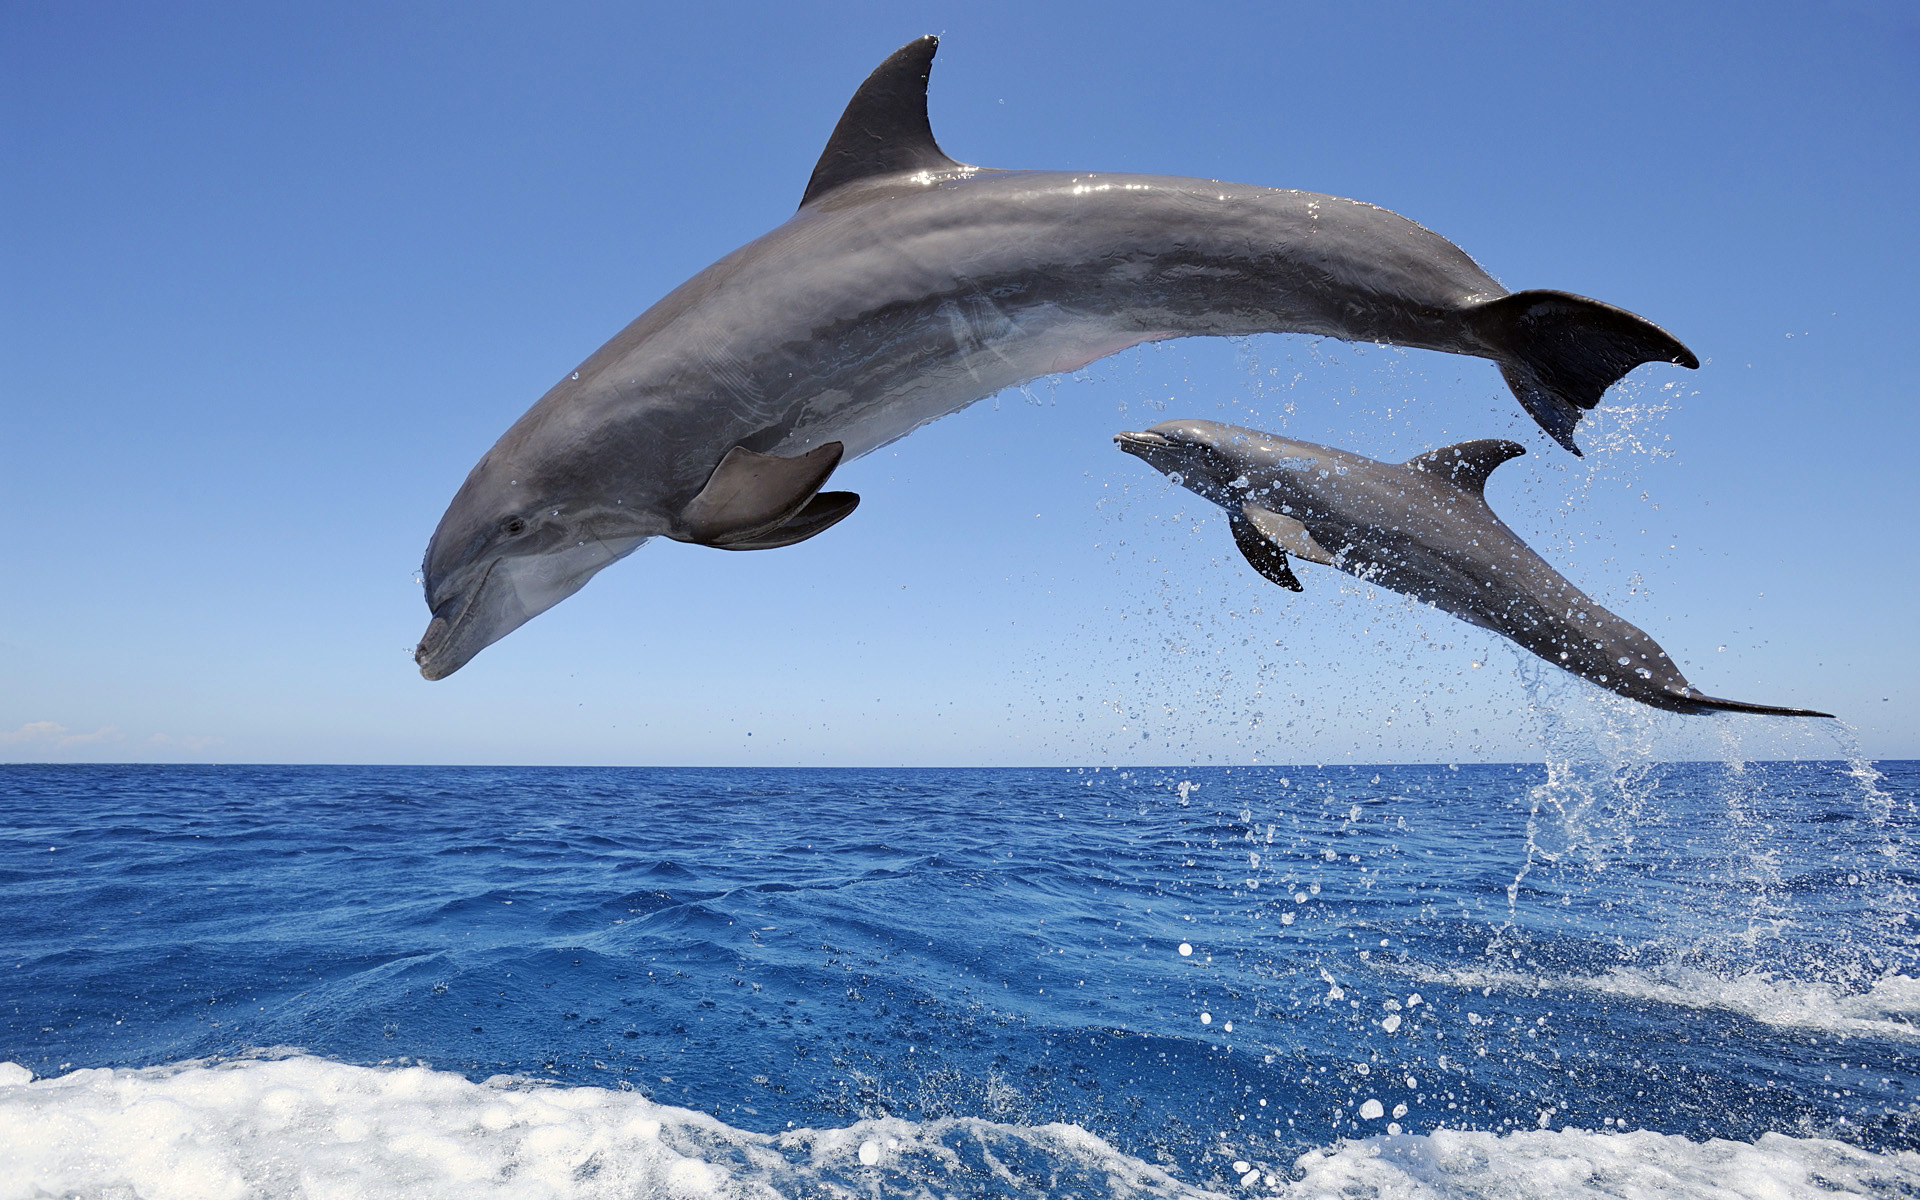 Bottlenose dolphins have excellent vision both above and below the water.